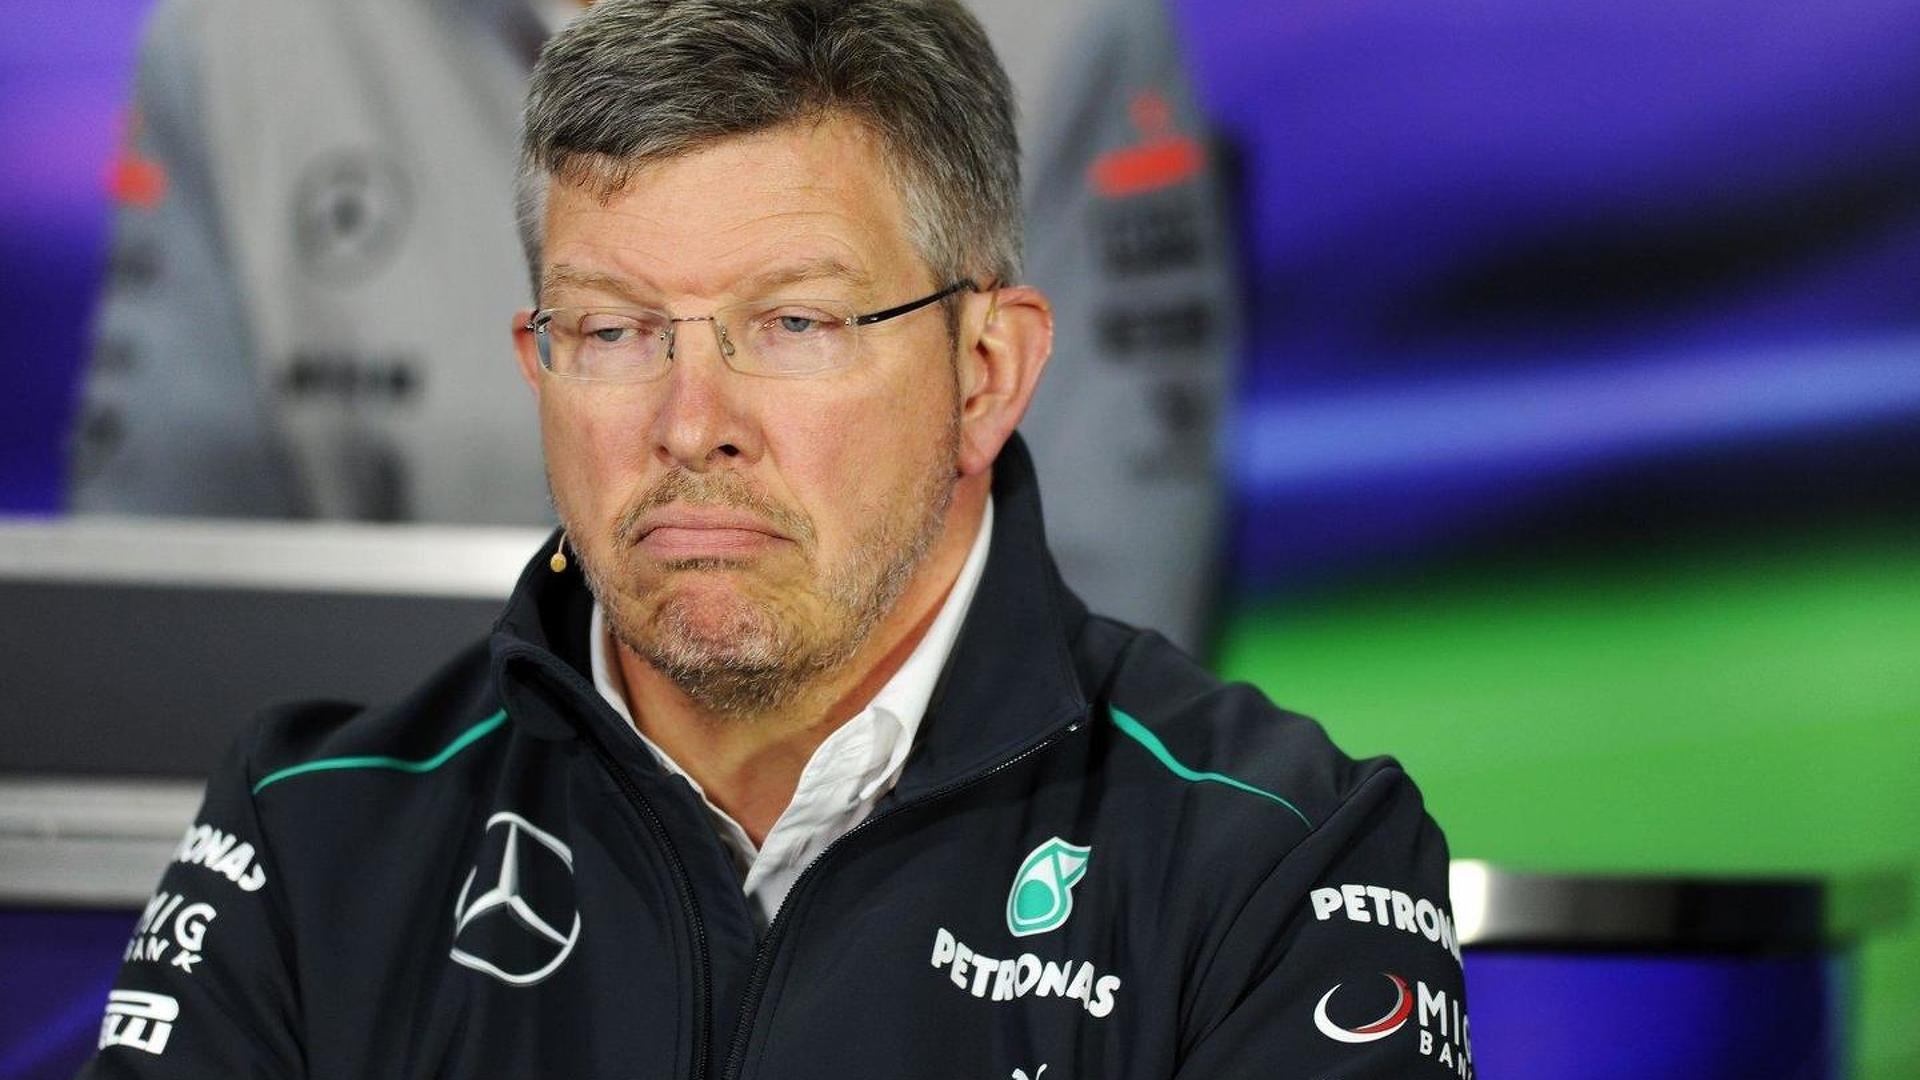 Brawn expecting many engine failures in 2014